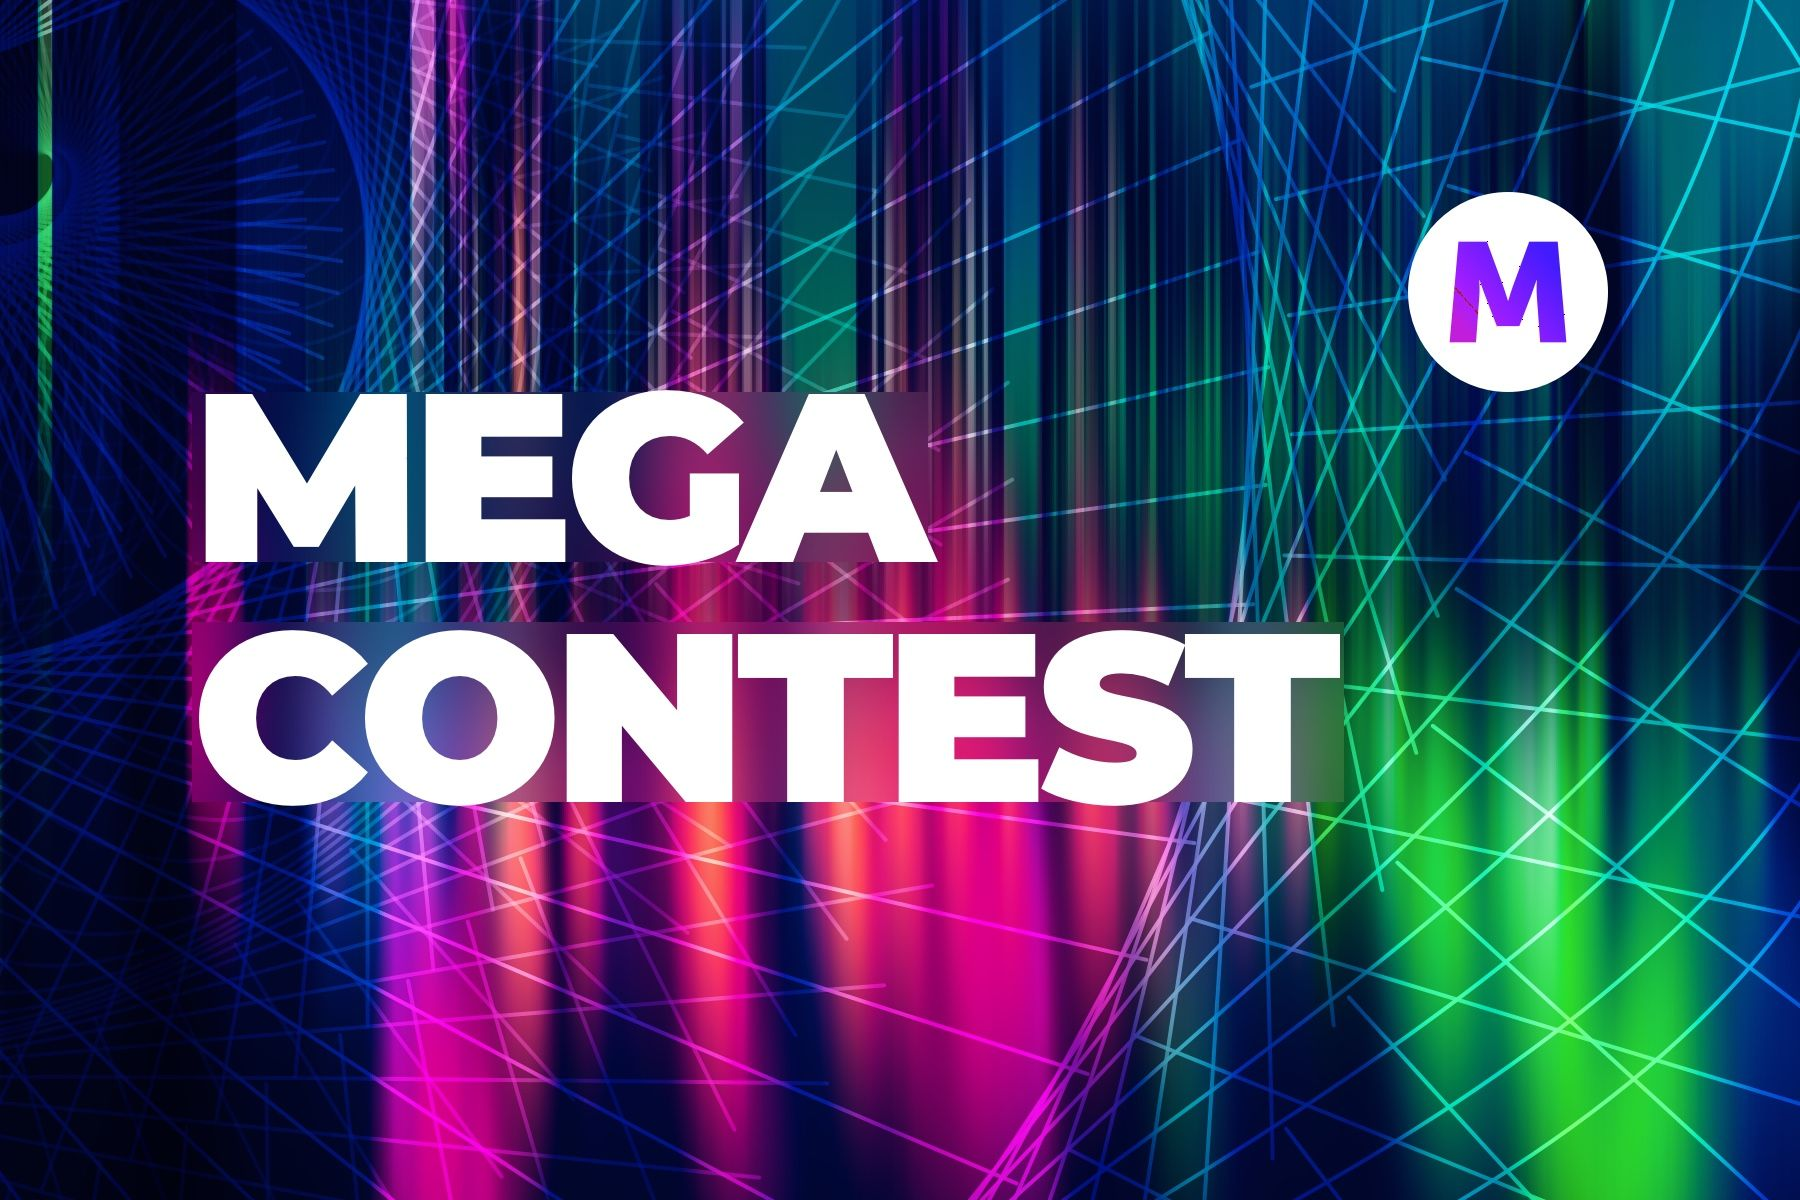 Mega Contest: 100 top crypto analysts will create a decentralised quant strategy and share its profit